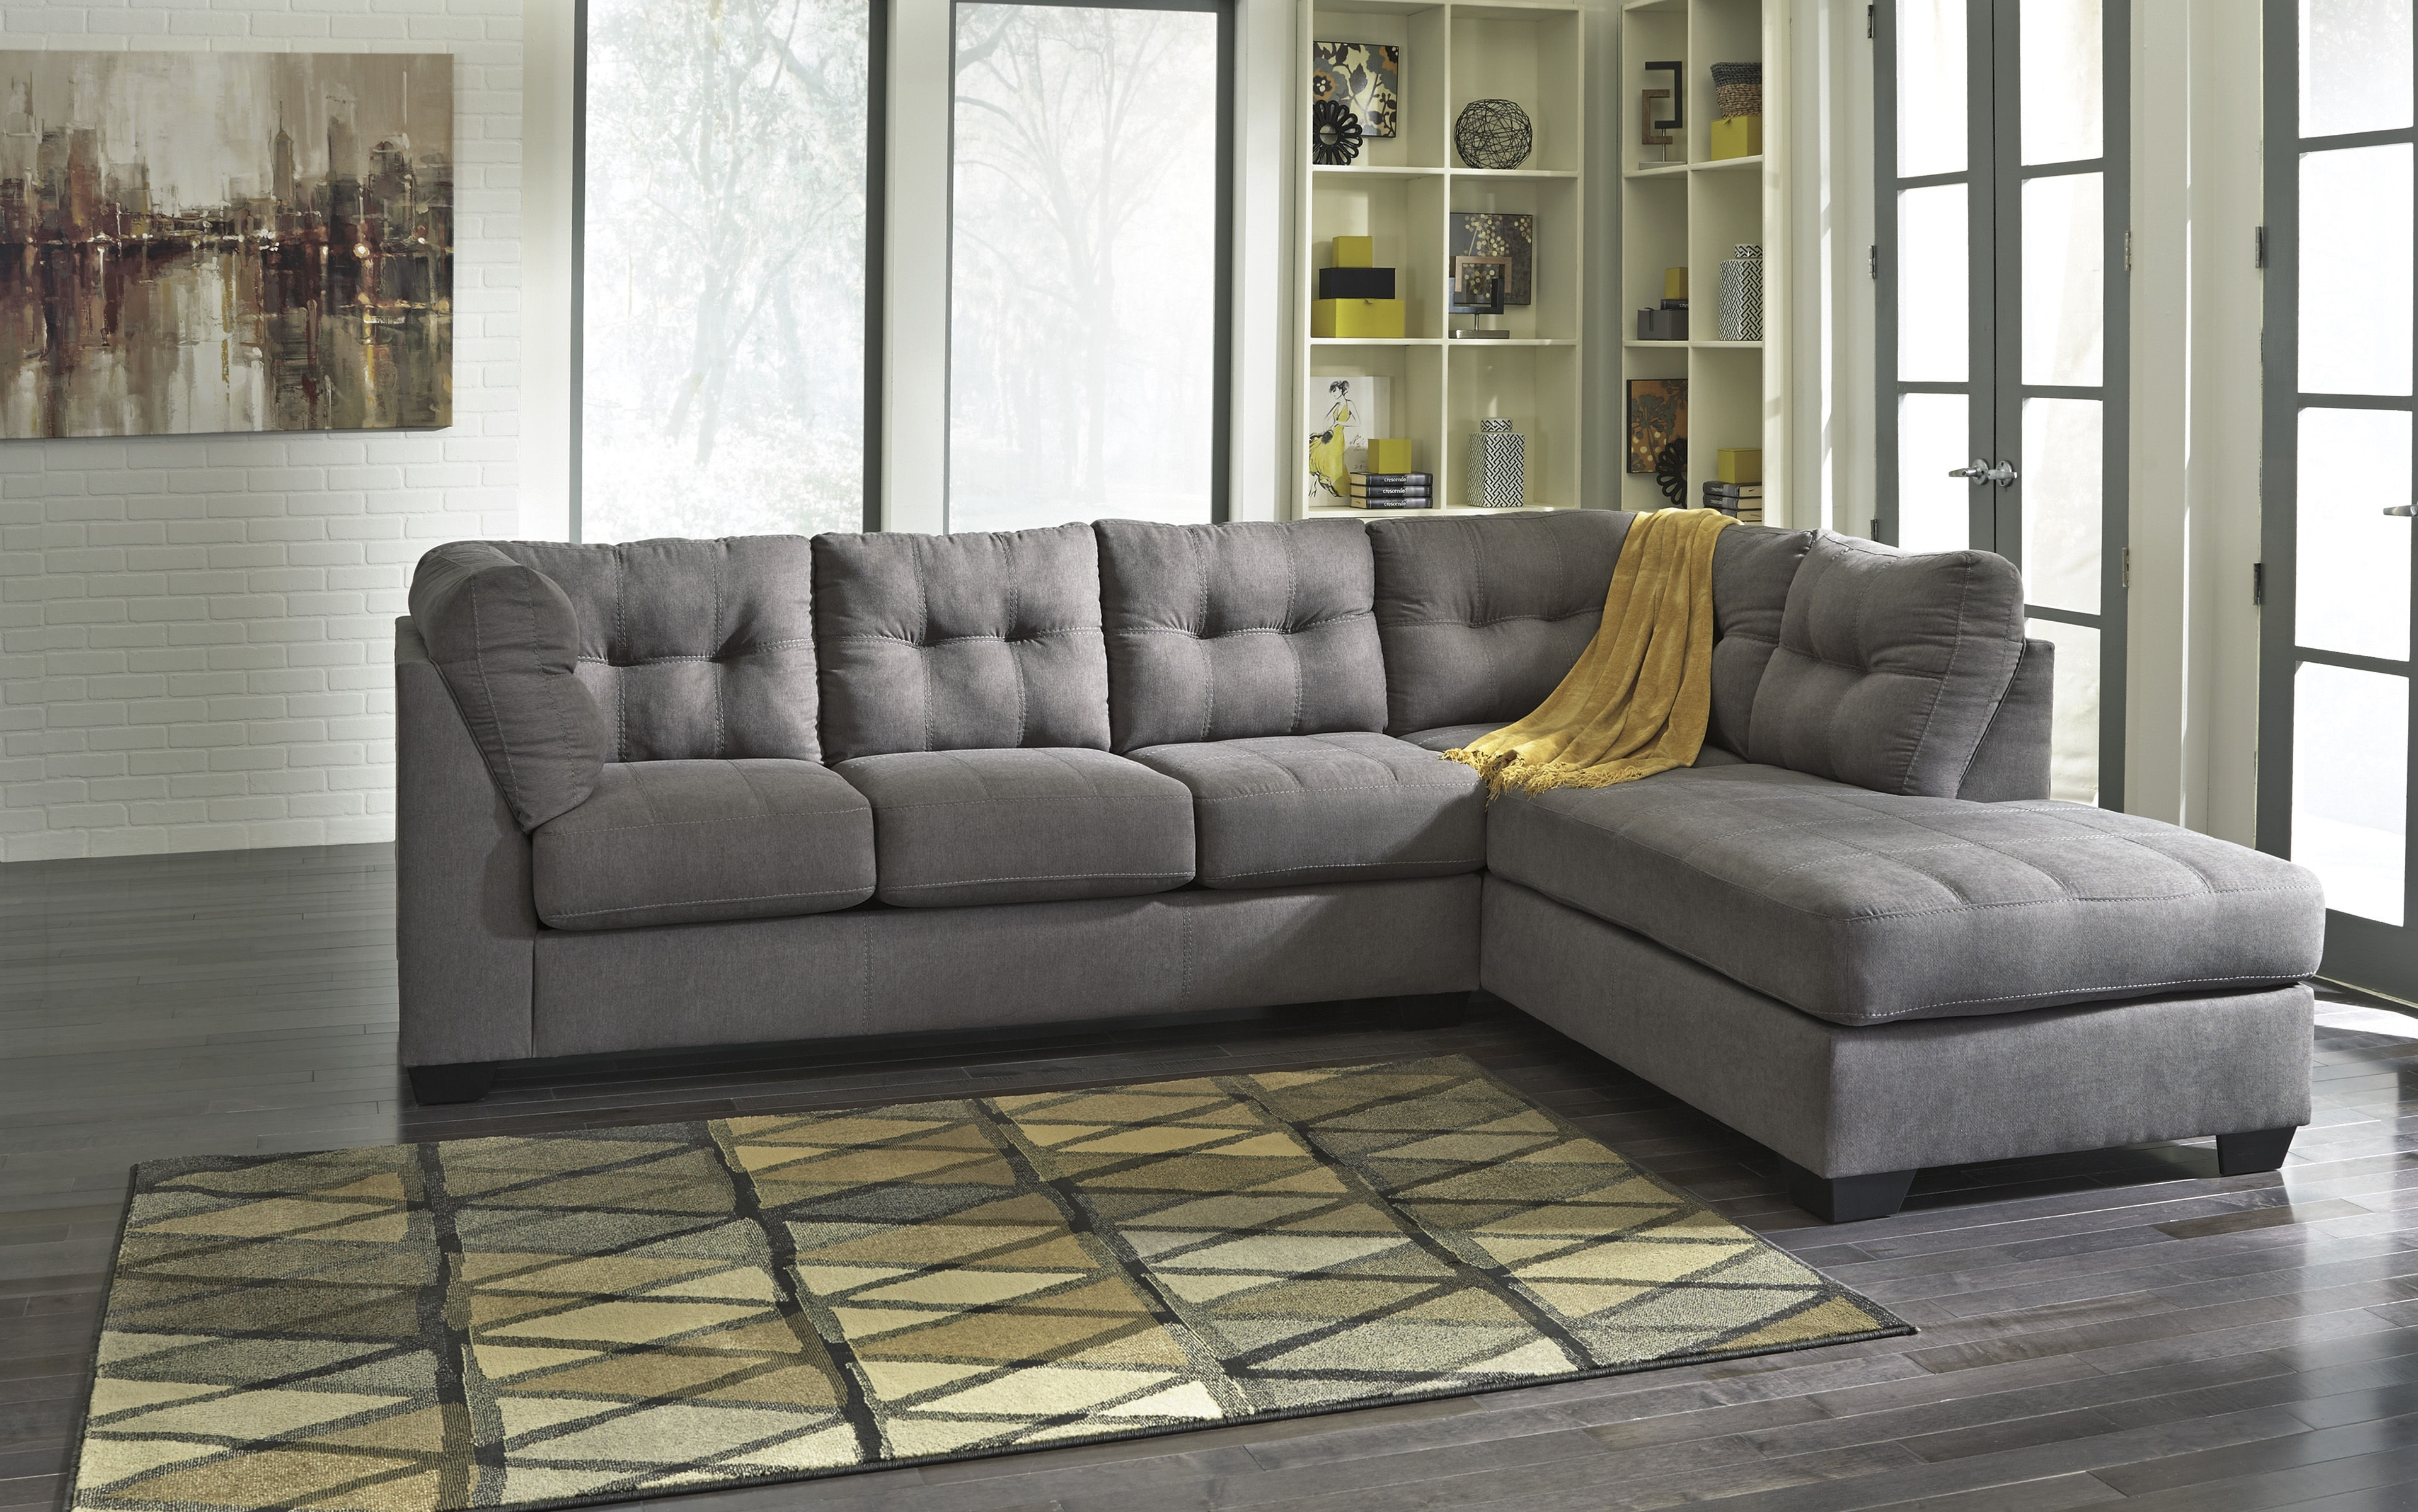 Ashley Furniture Maier Charcoal Raf Chaise Sectional | The Classy Home for Lucy Grey 2 Piece Sleeper Sectionals With Laf Chaise (Image 6 of 30)